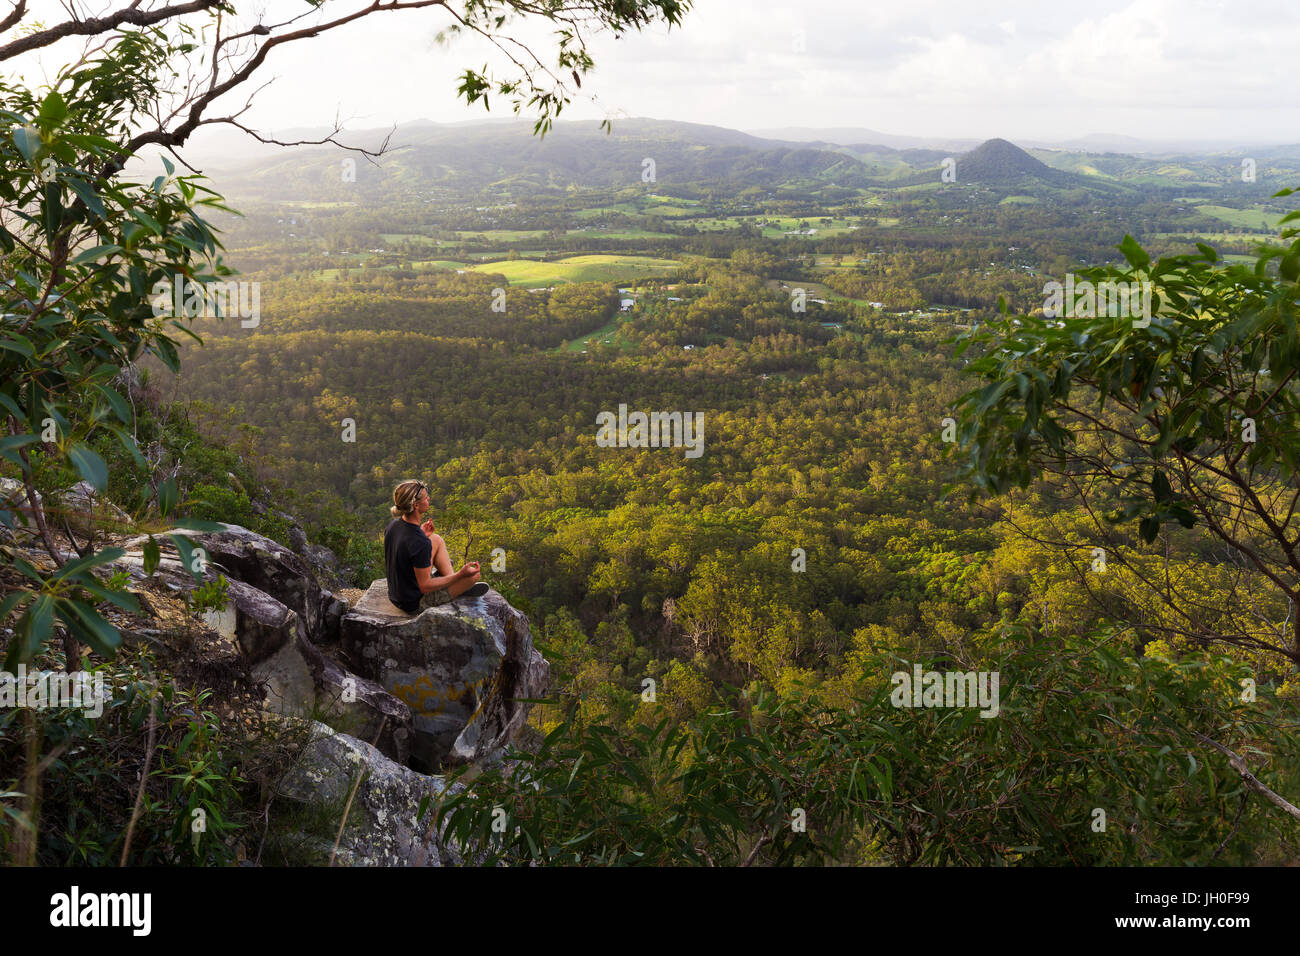 A young man sits, quietly meditating on top of a mountain with expansive views near Noosa Heads, Australia. - Stock Image